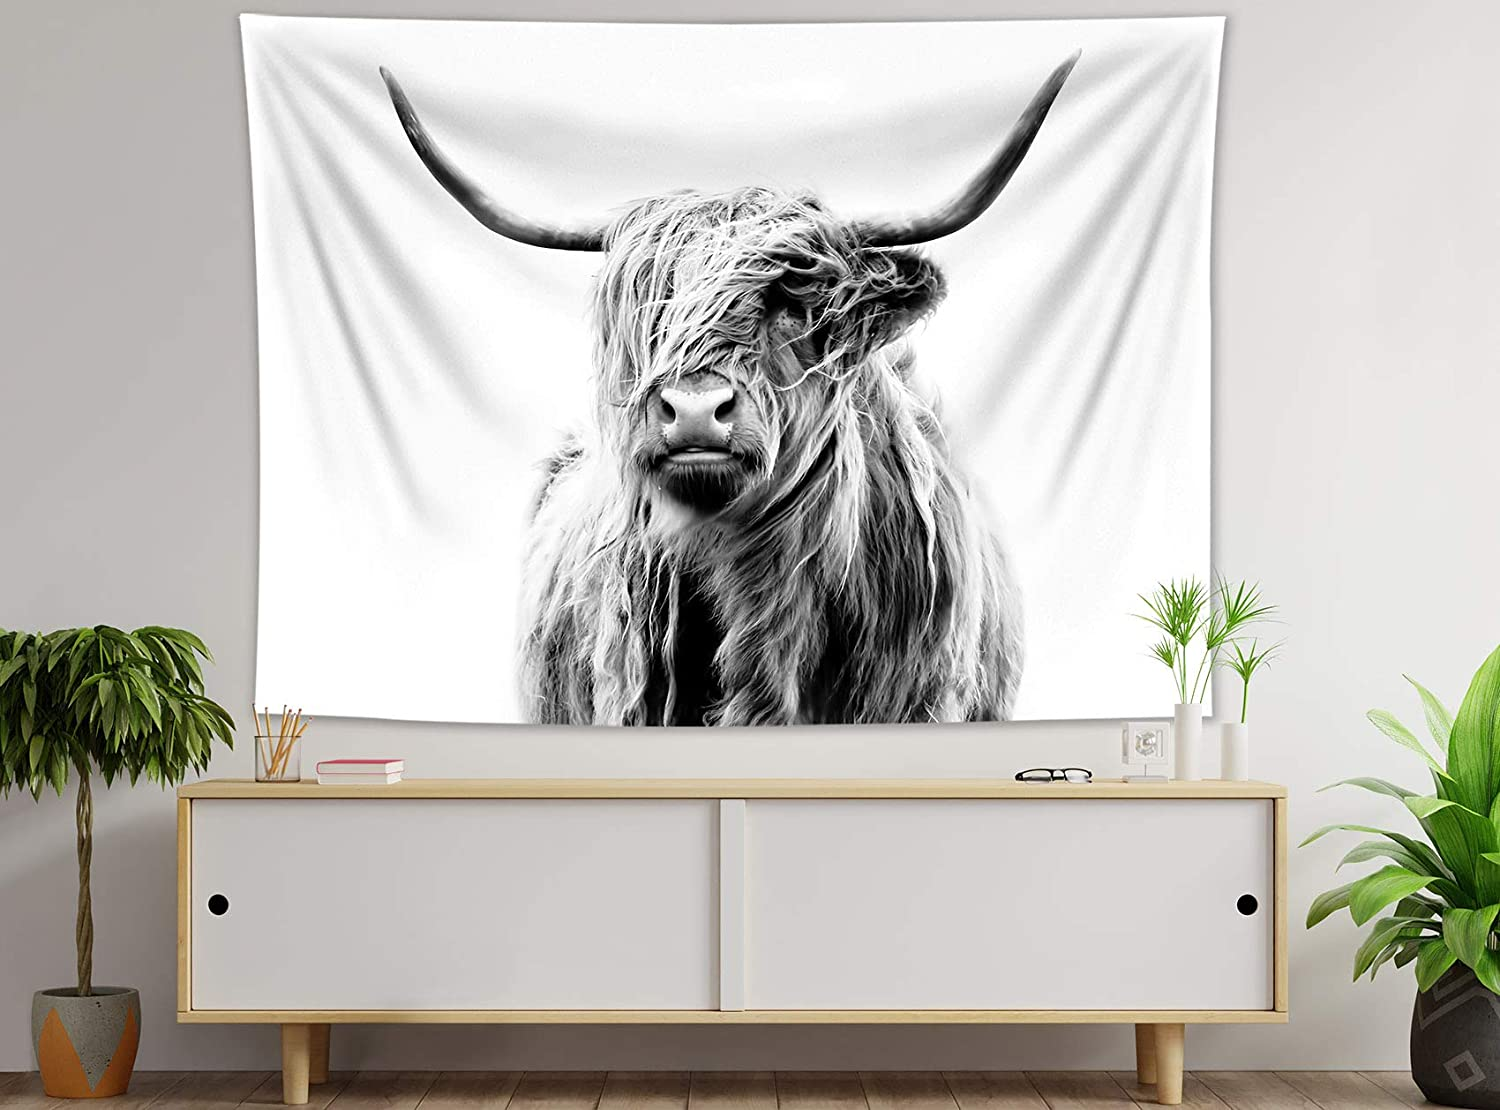 HVEST Highland Cow Tapestry Cute Rustic Farmhouse Animal Cattle Wall Art Decor Tapestries Funny Cow Portrait Poster for Living Room Bedroom Teen Dorm Indie Decor Artwork,59x51 Inches